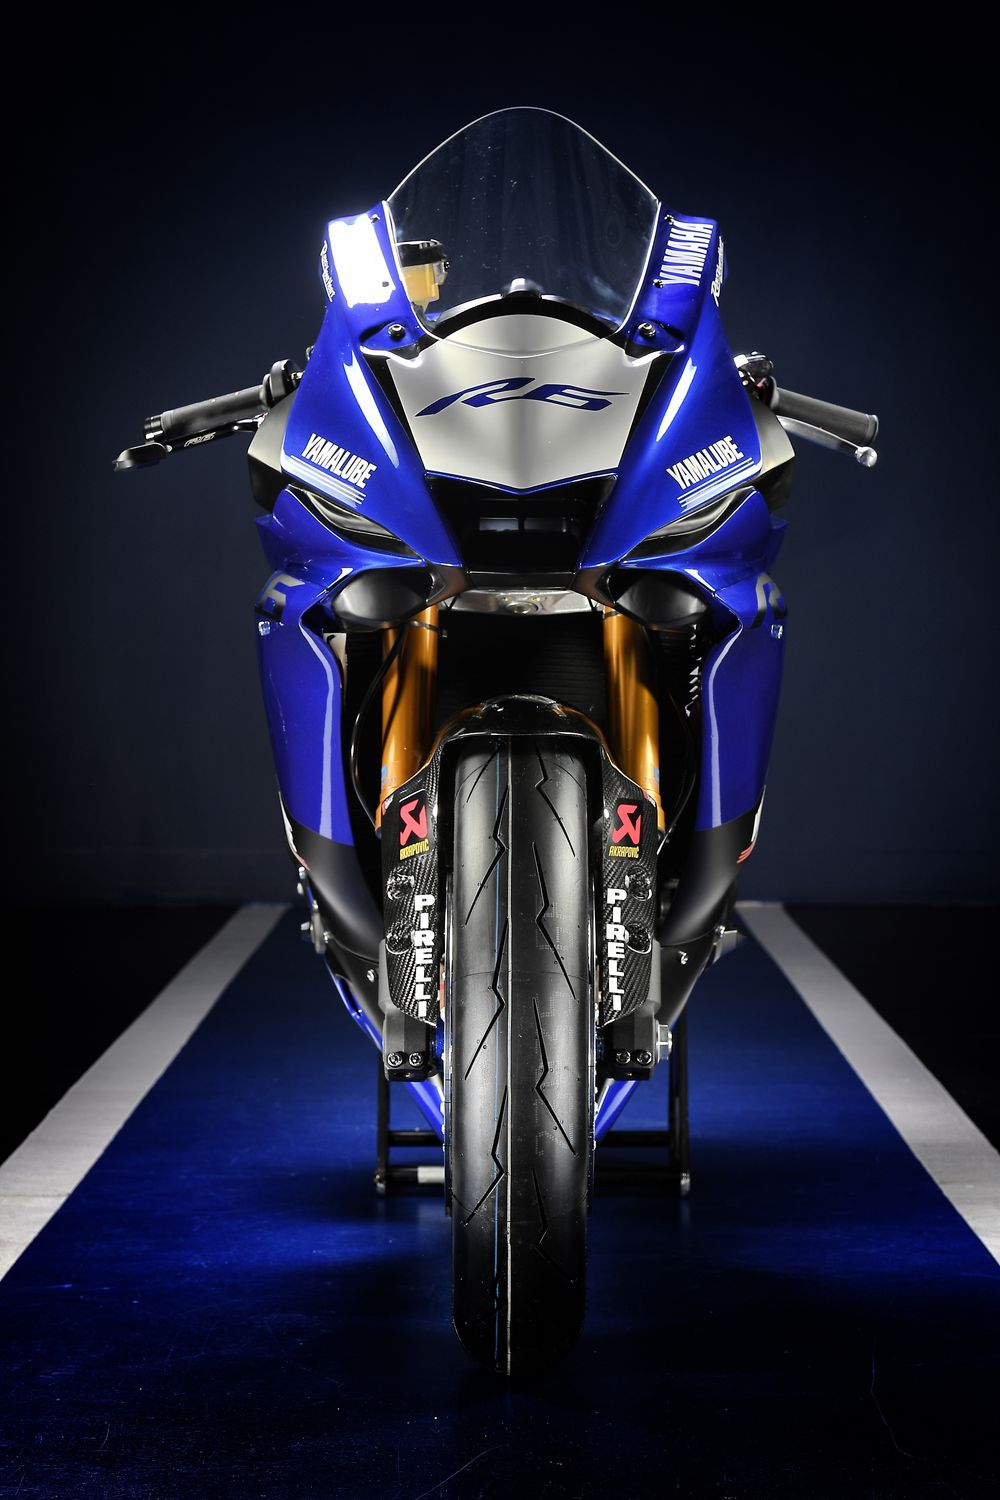 Yamaha R6 Front View Photos